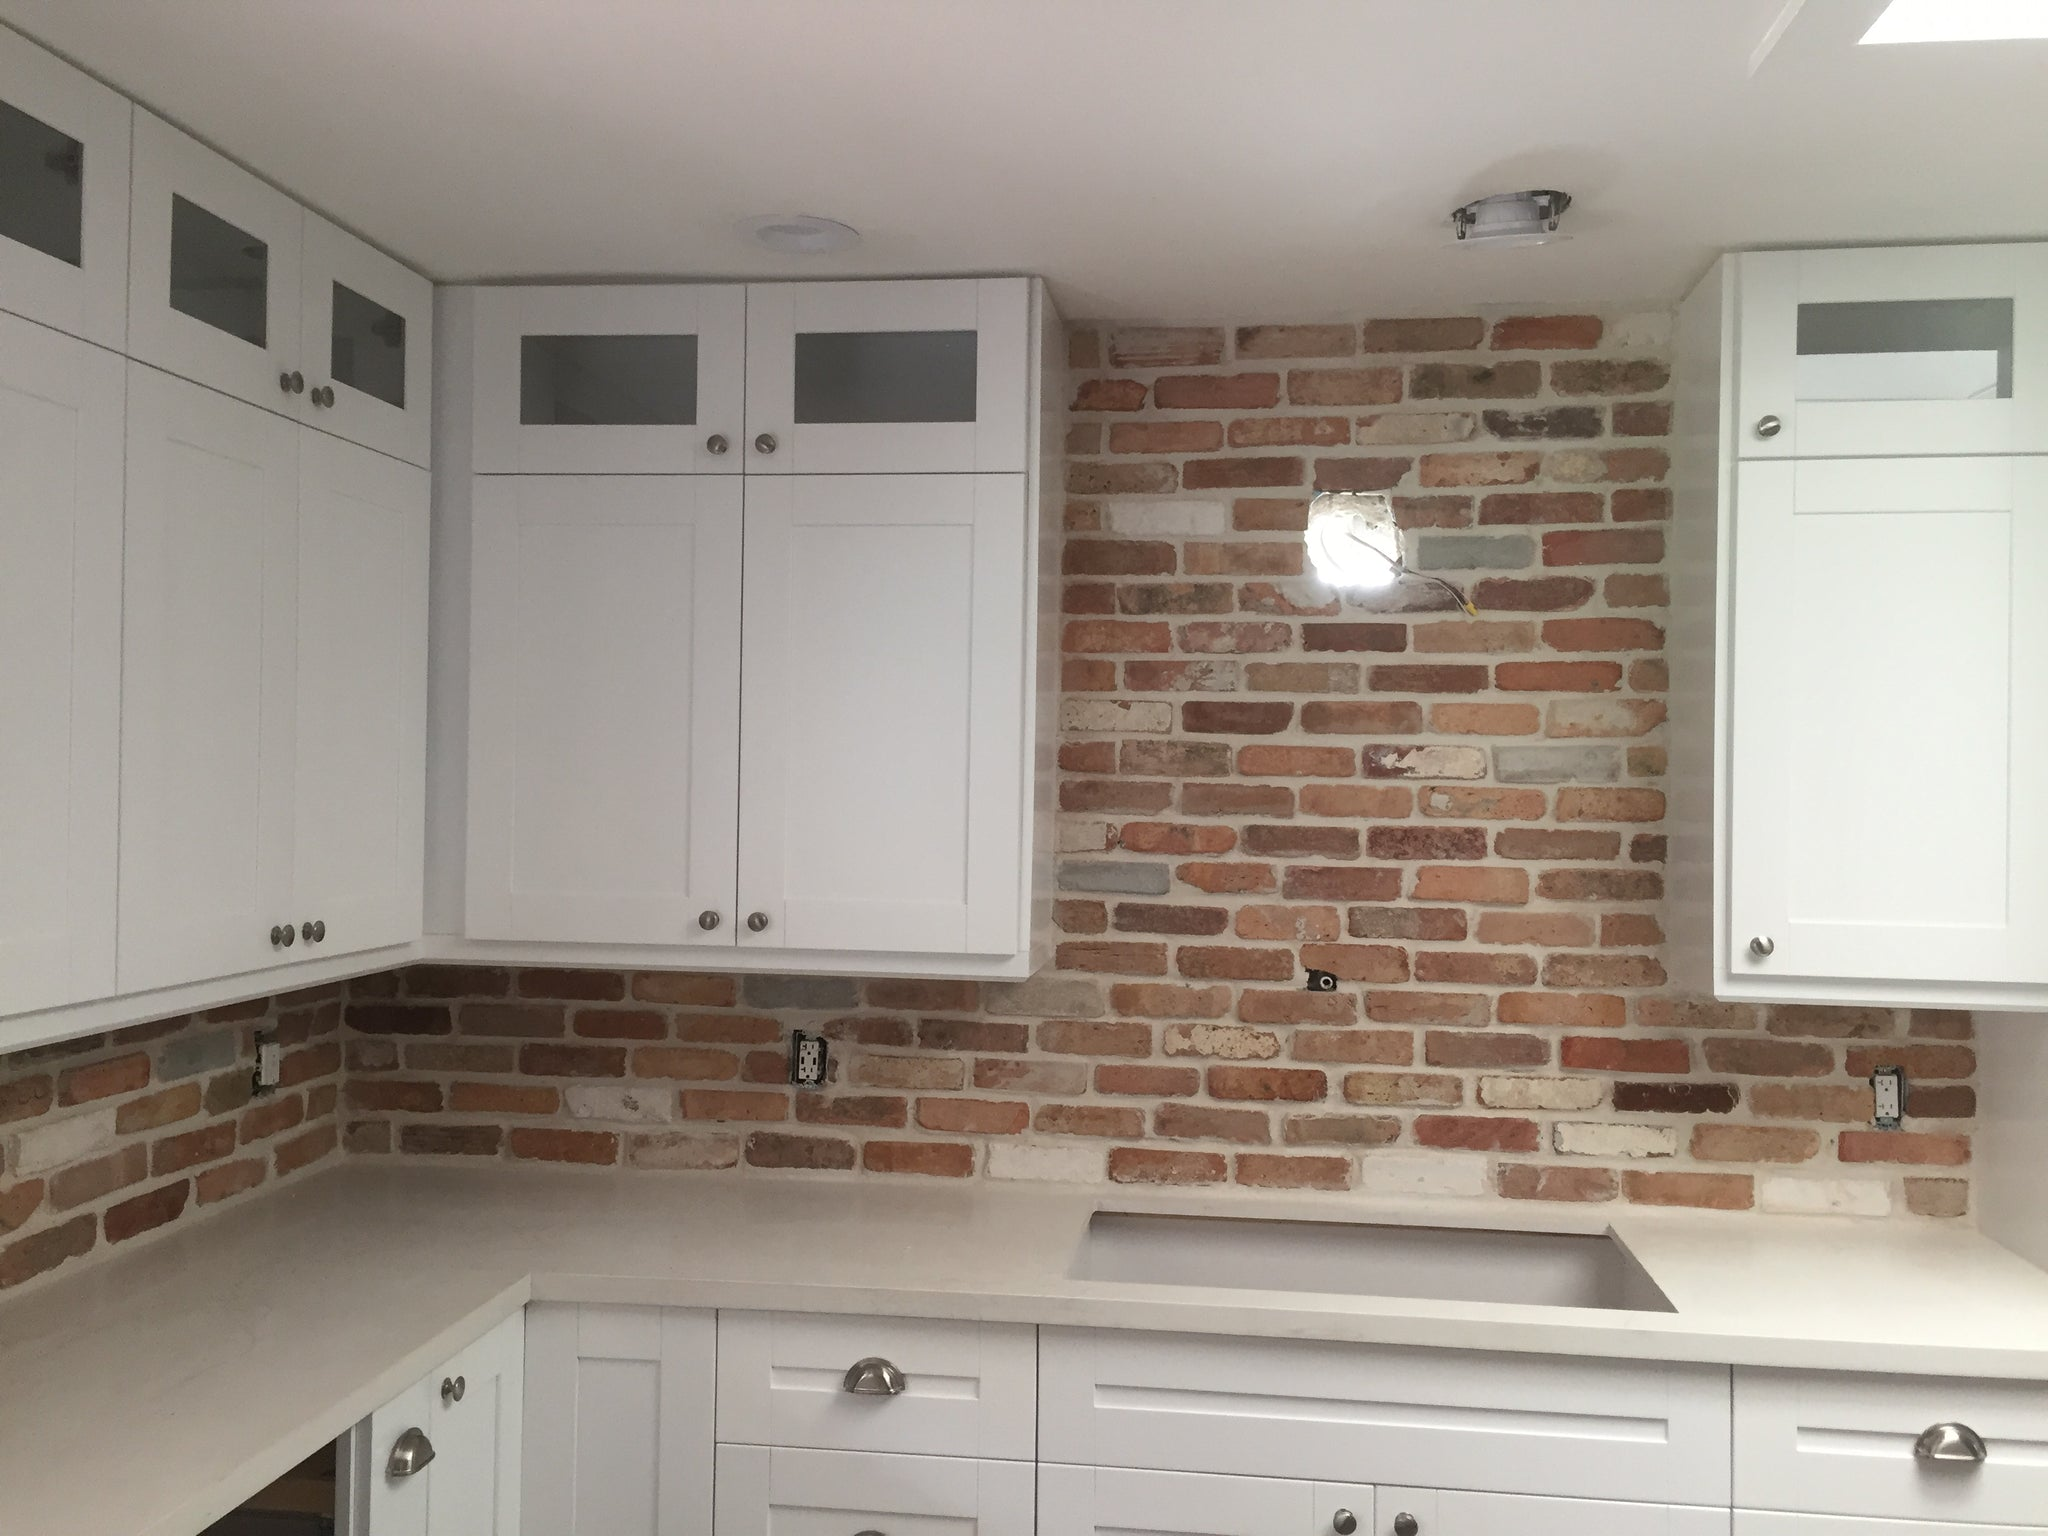 Brick Veneer Collection: Old Chicago Brick Veneers. Install Brick Walls Any Part Of